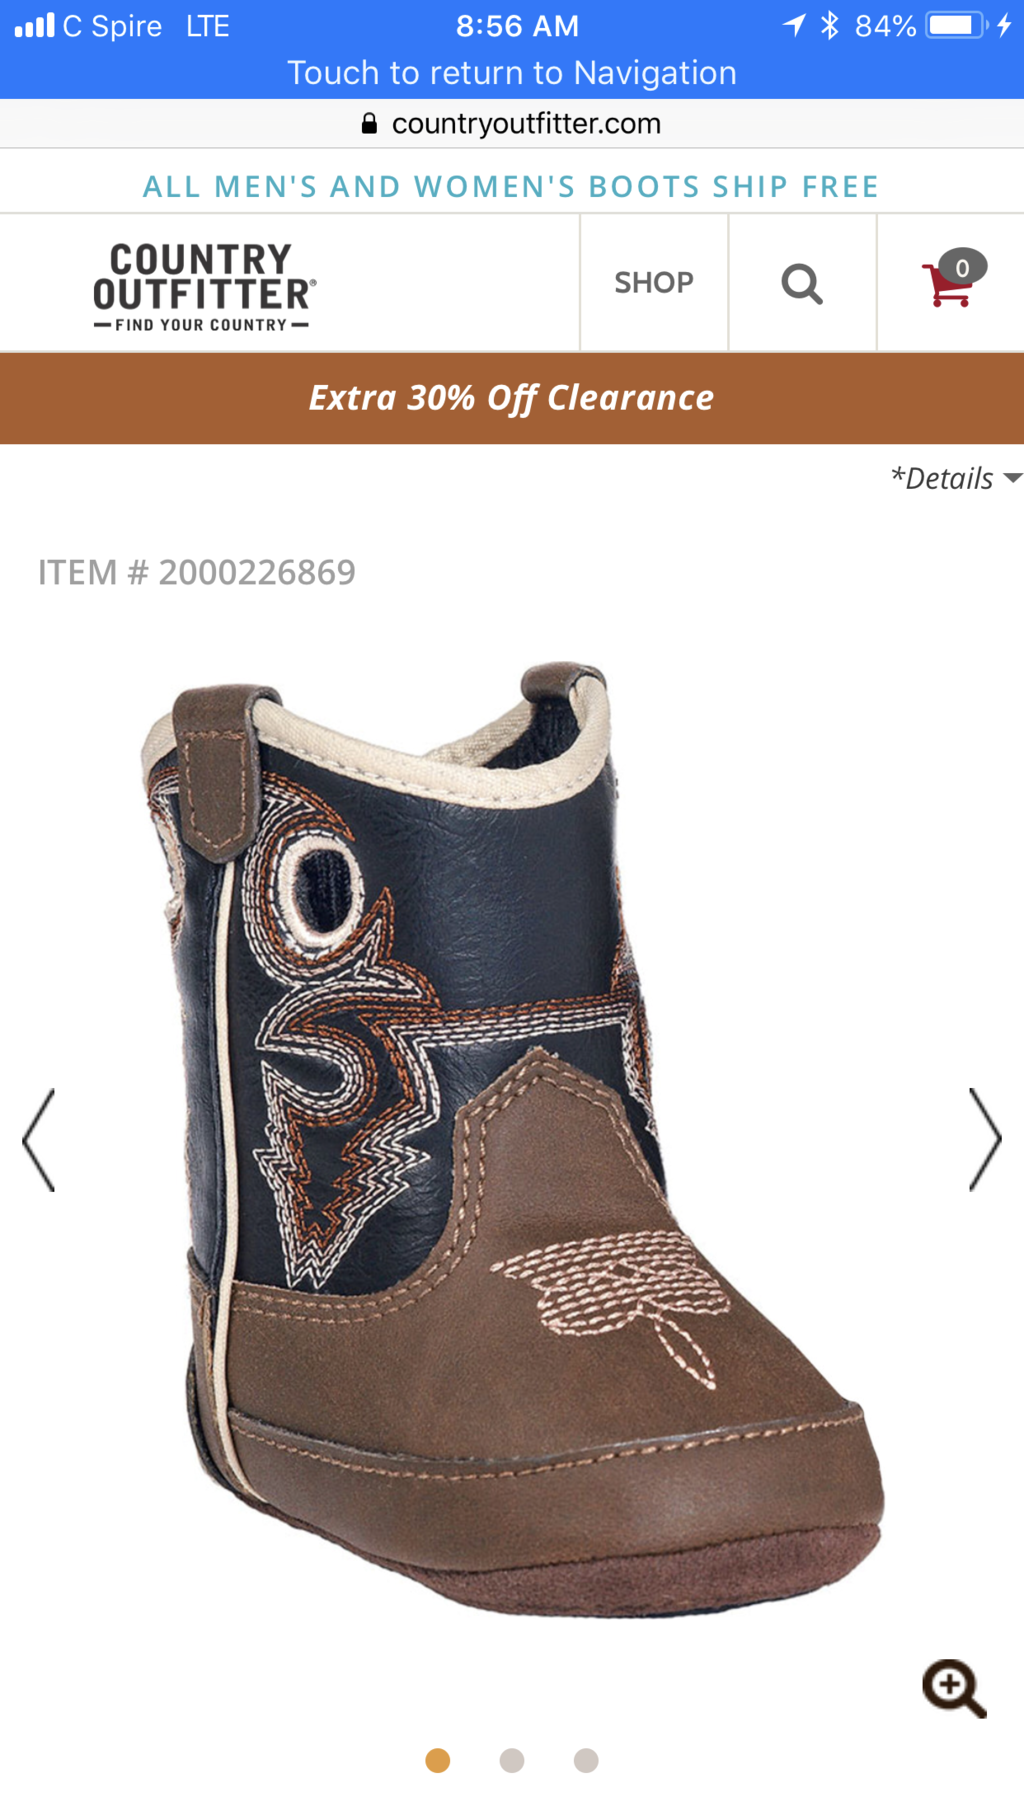 9f77a280858c3 61. Double Barrel Infant Boys' Trace Baby Bucker Boots - Round Toe -  Country Outfitter